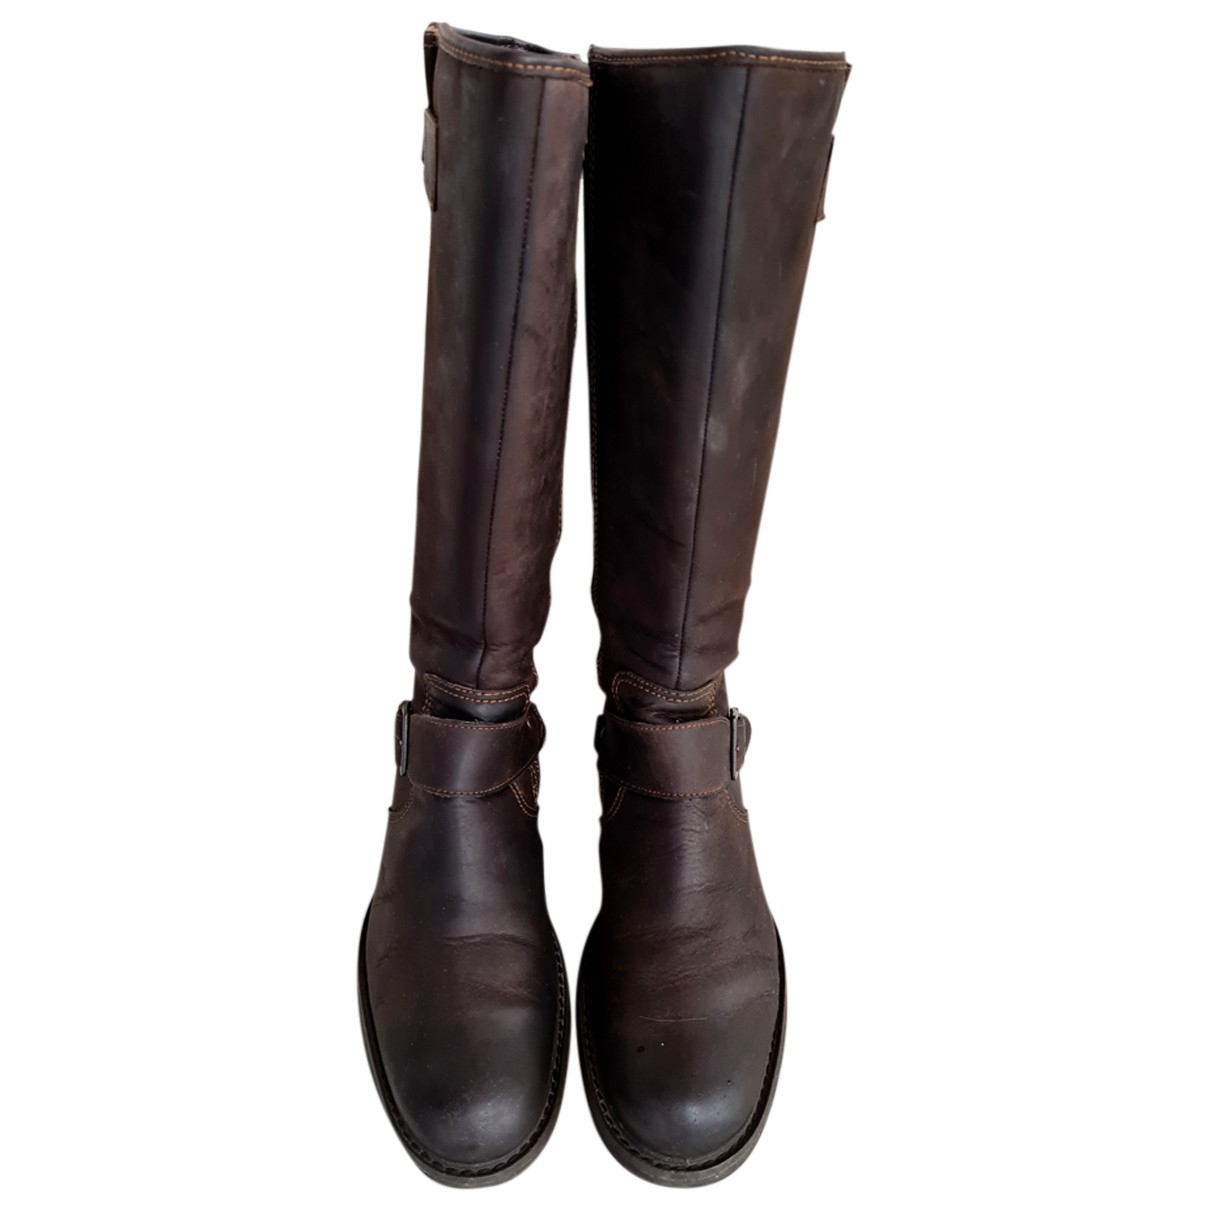 Timberland N Brown Leather Boots for Women 8 US